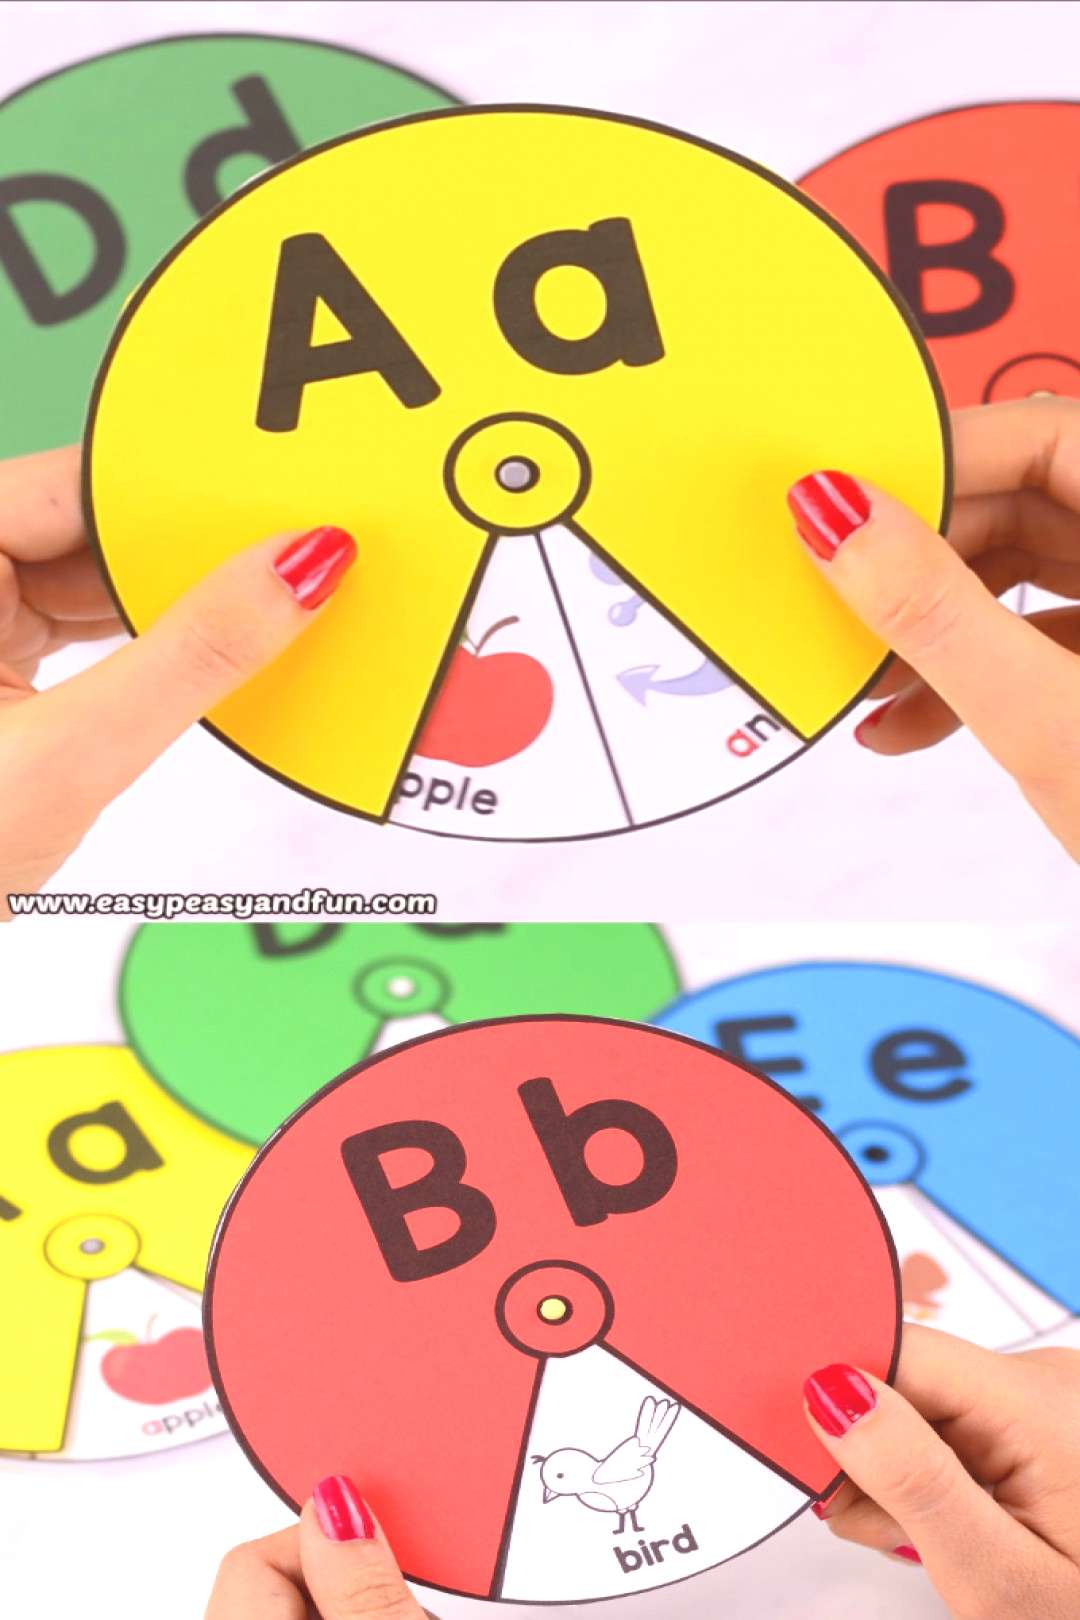 Printable Alphabet Spinners - fun alphabet activity for kids